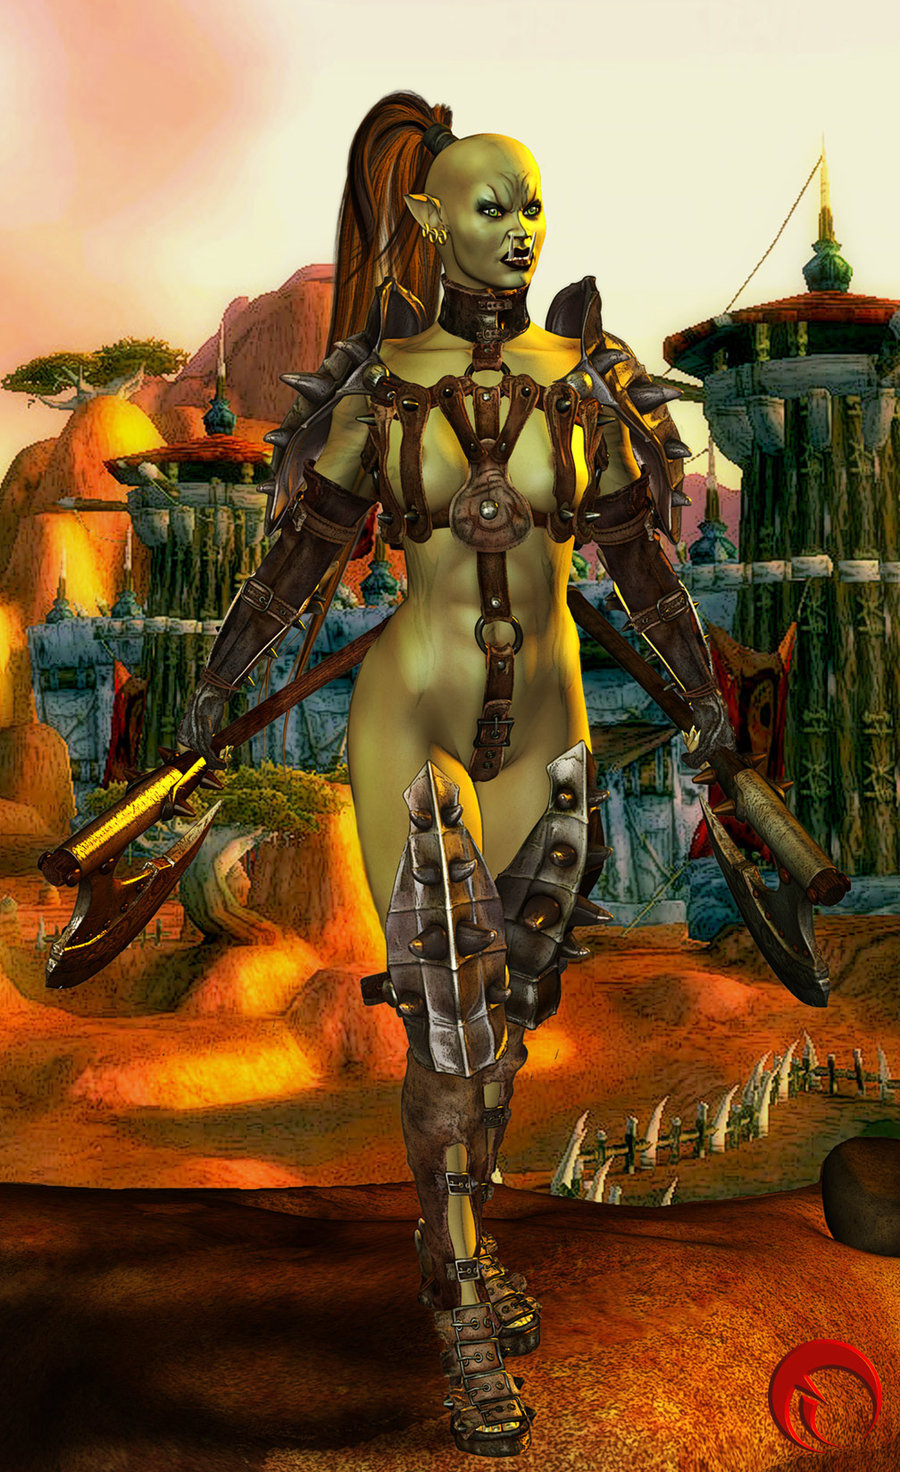 orc female warrior picture image - Orc clan and Orks fantasy and monsters fan group - Mod DB